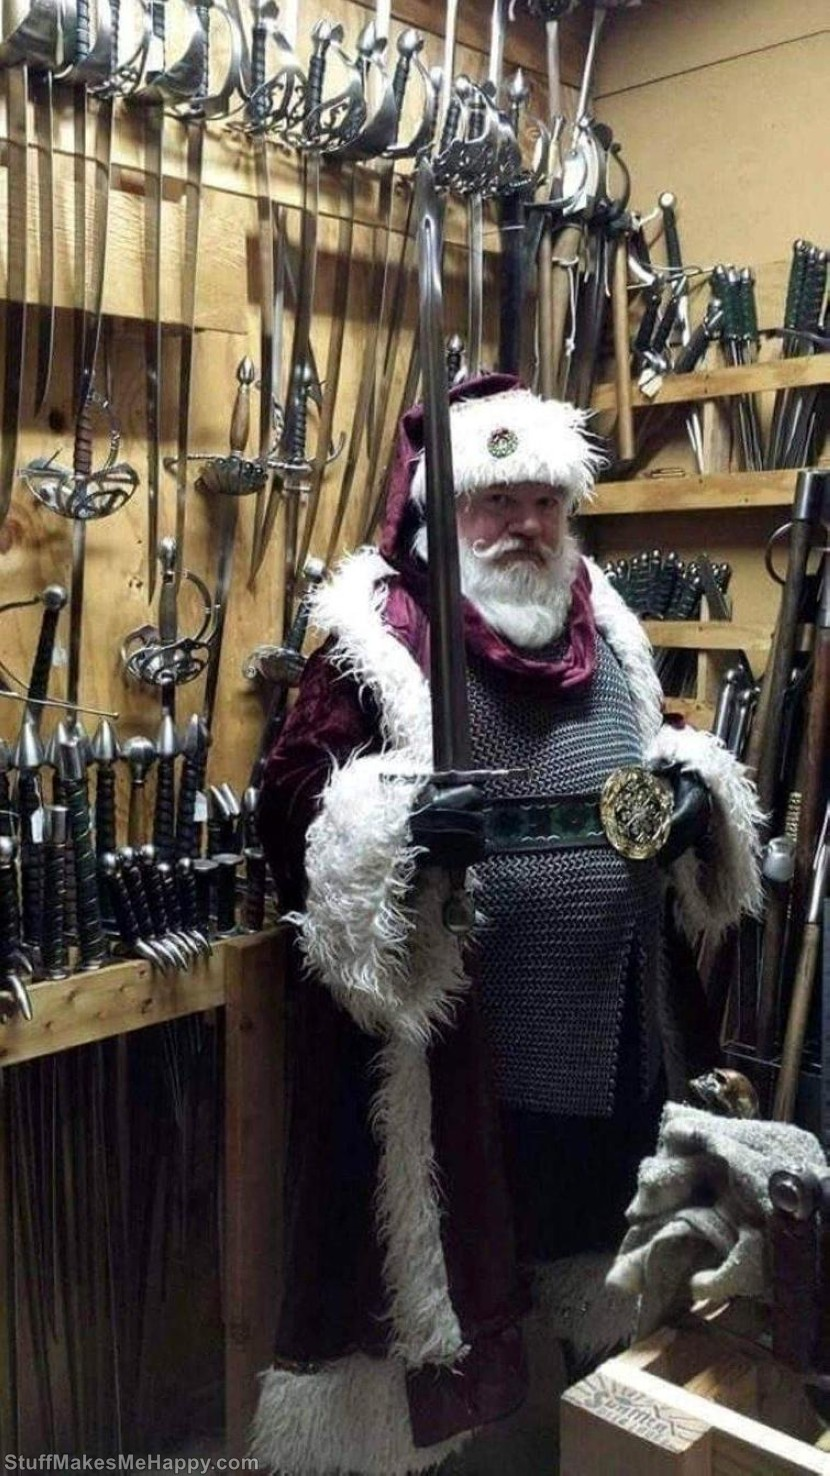 This Santa naughty kids chopping heads off with a sword